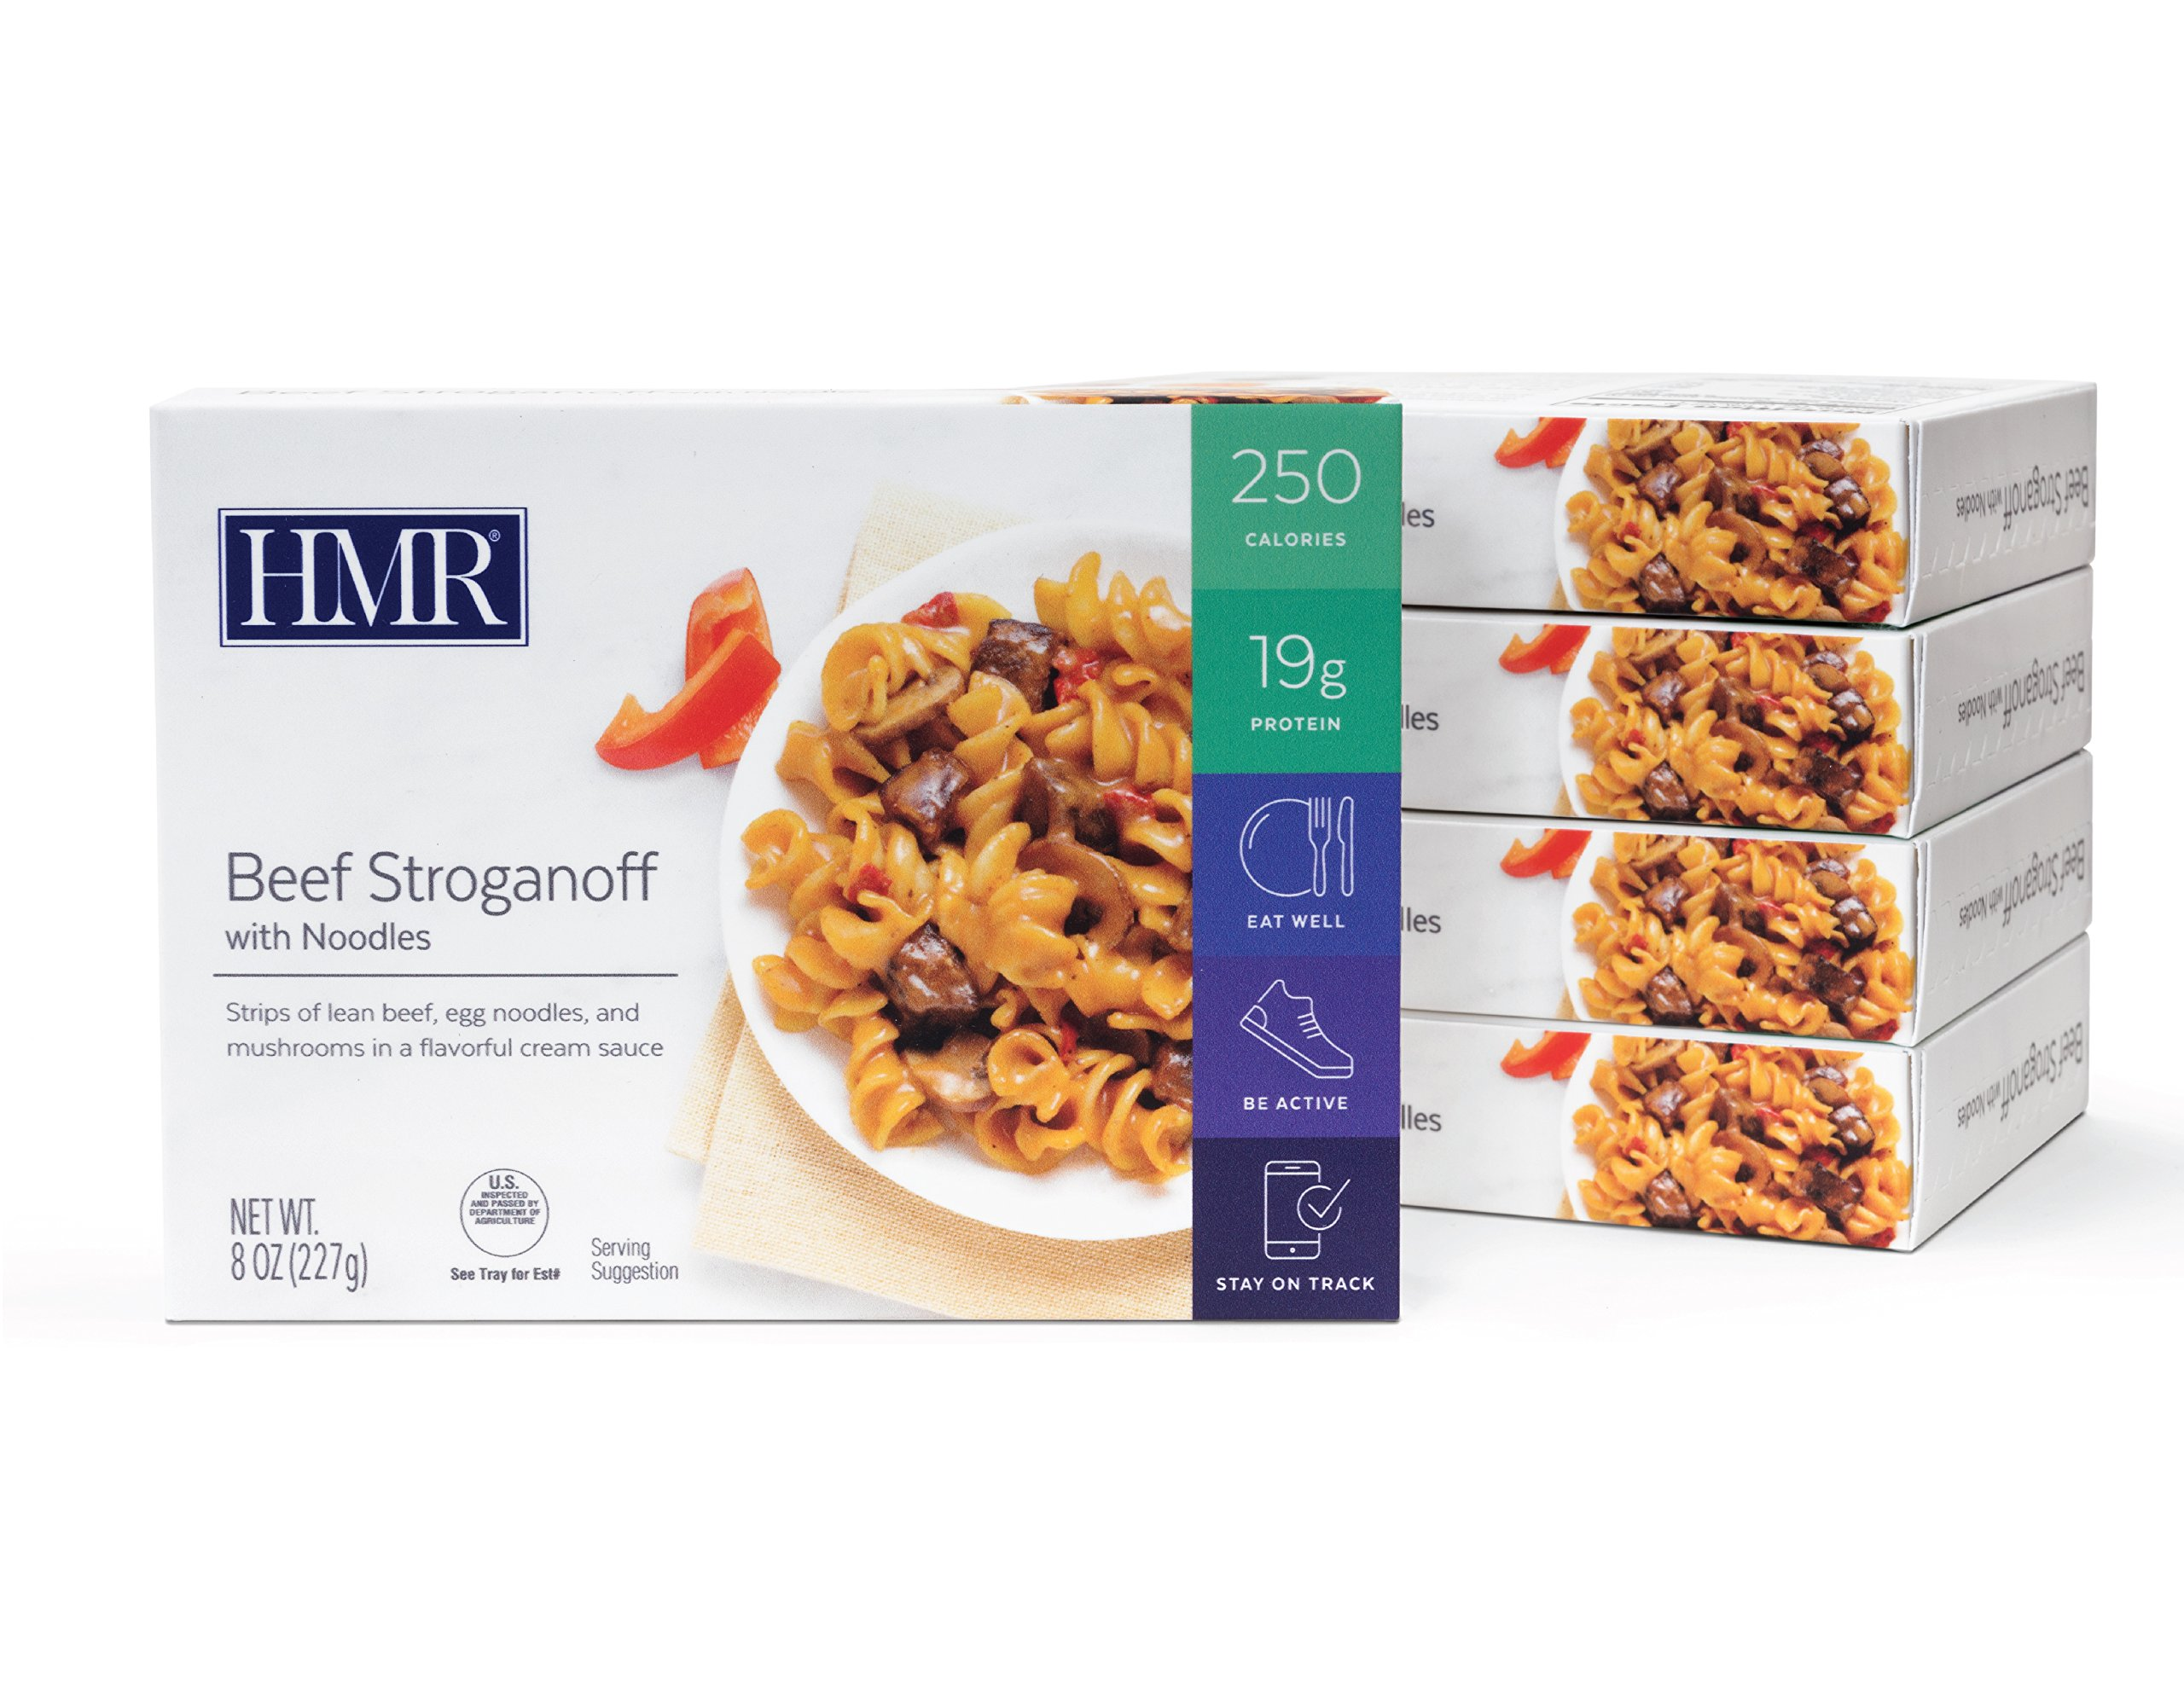 HMR Beef Stroganoff with Noodles Entree, 8 oz. servings, 5 count by HMR